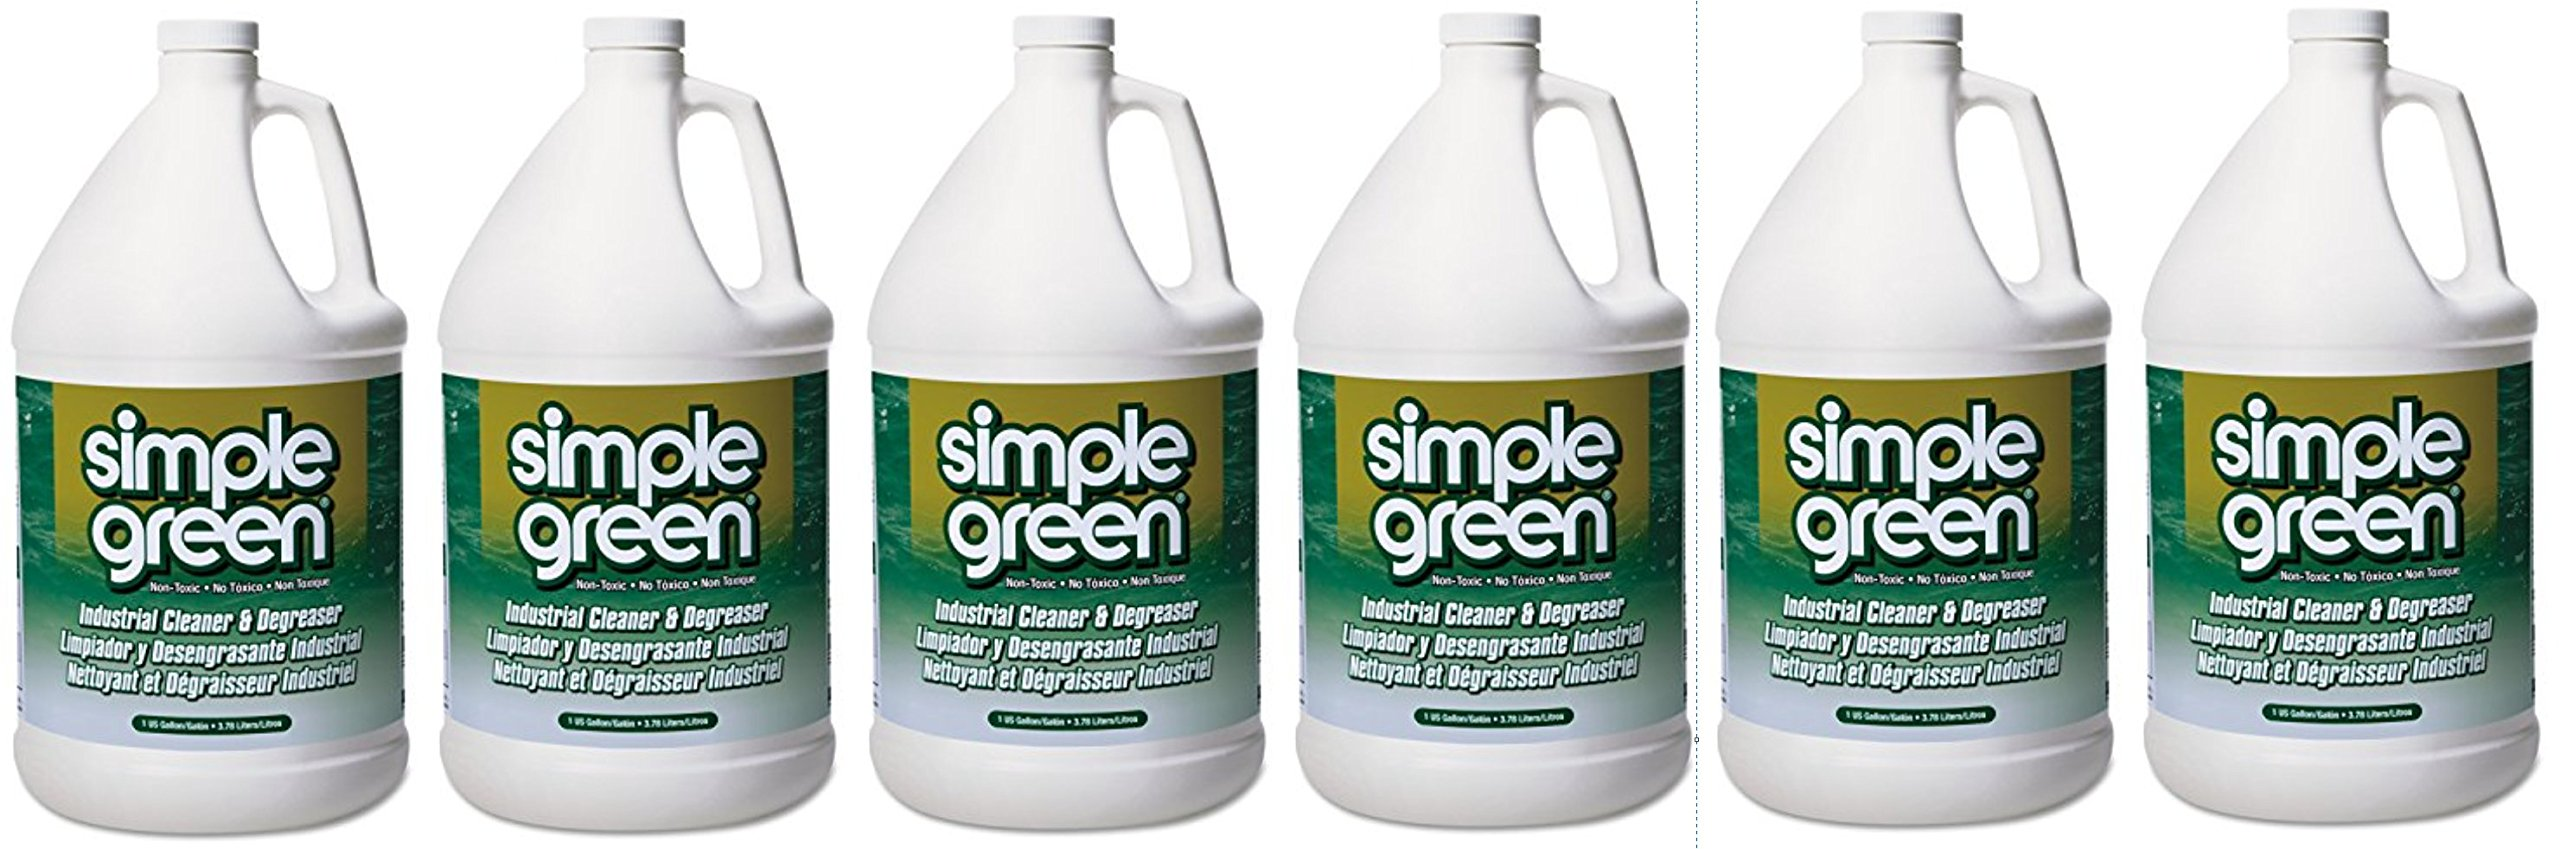 Simple Green 13005CT Industrial Cleaner and Degreaser, Concentrated, 1 Gal Bottle (6)